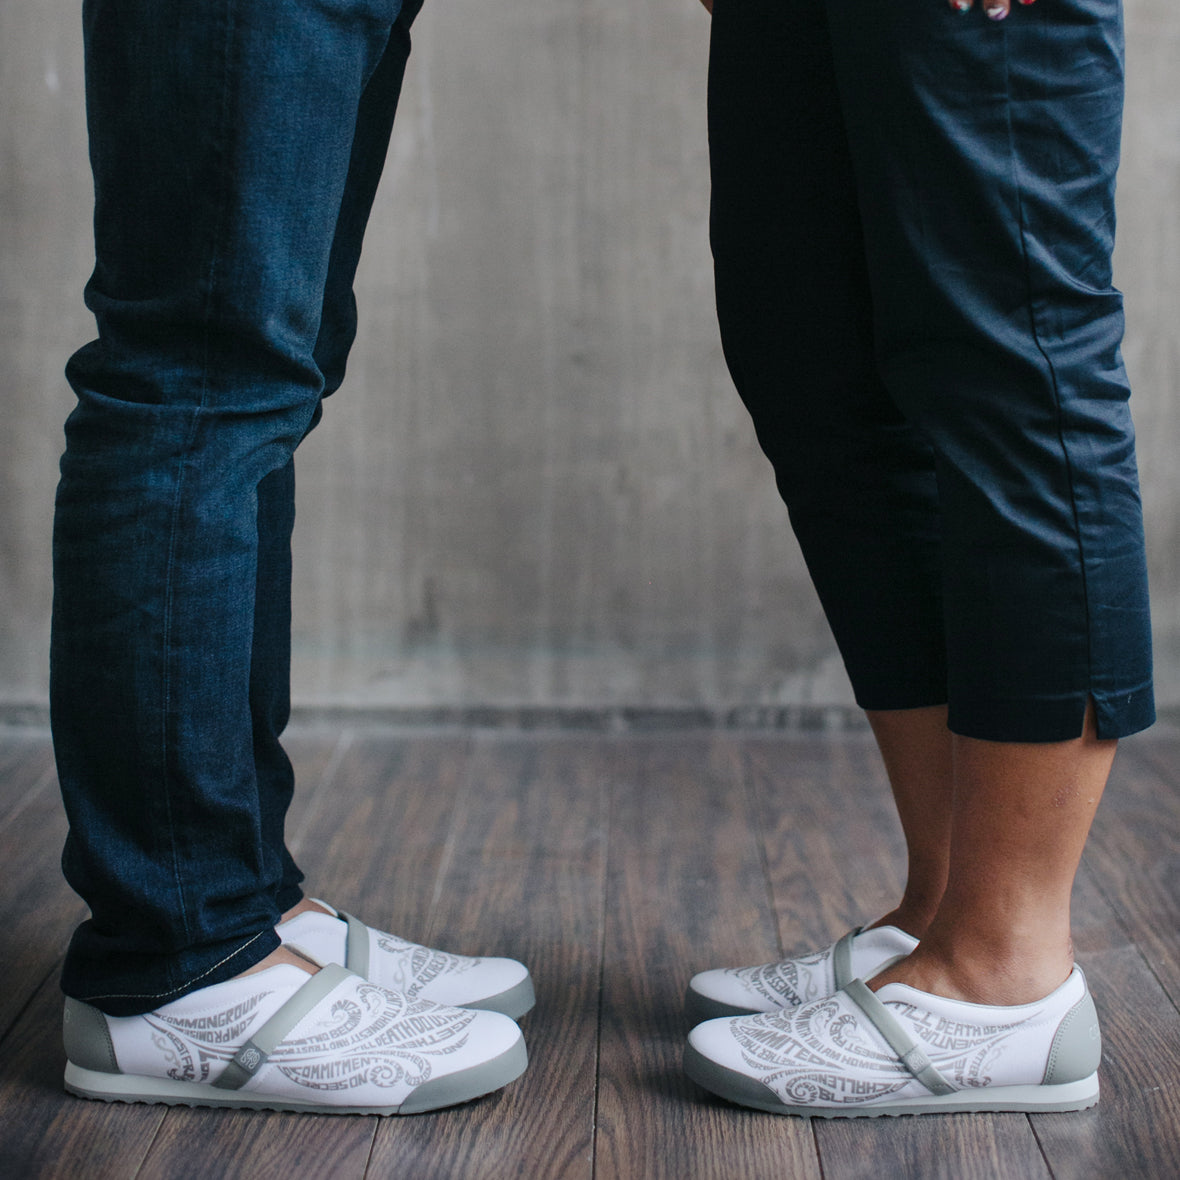 Take a stand on Marriage Equality in Common Ground Footwear | #StandForProgress